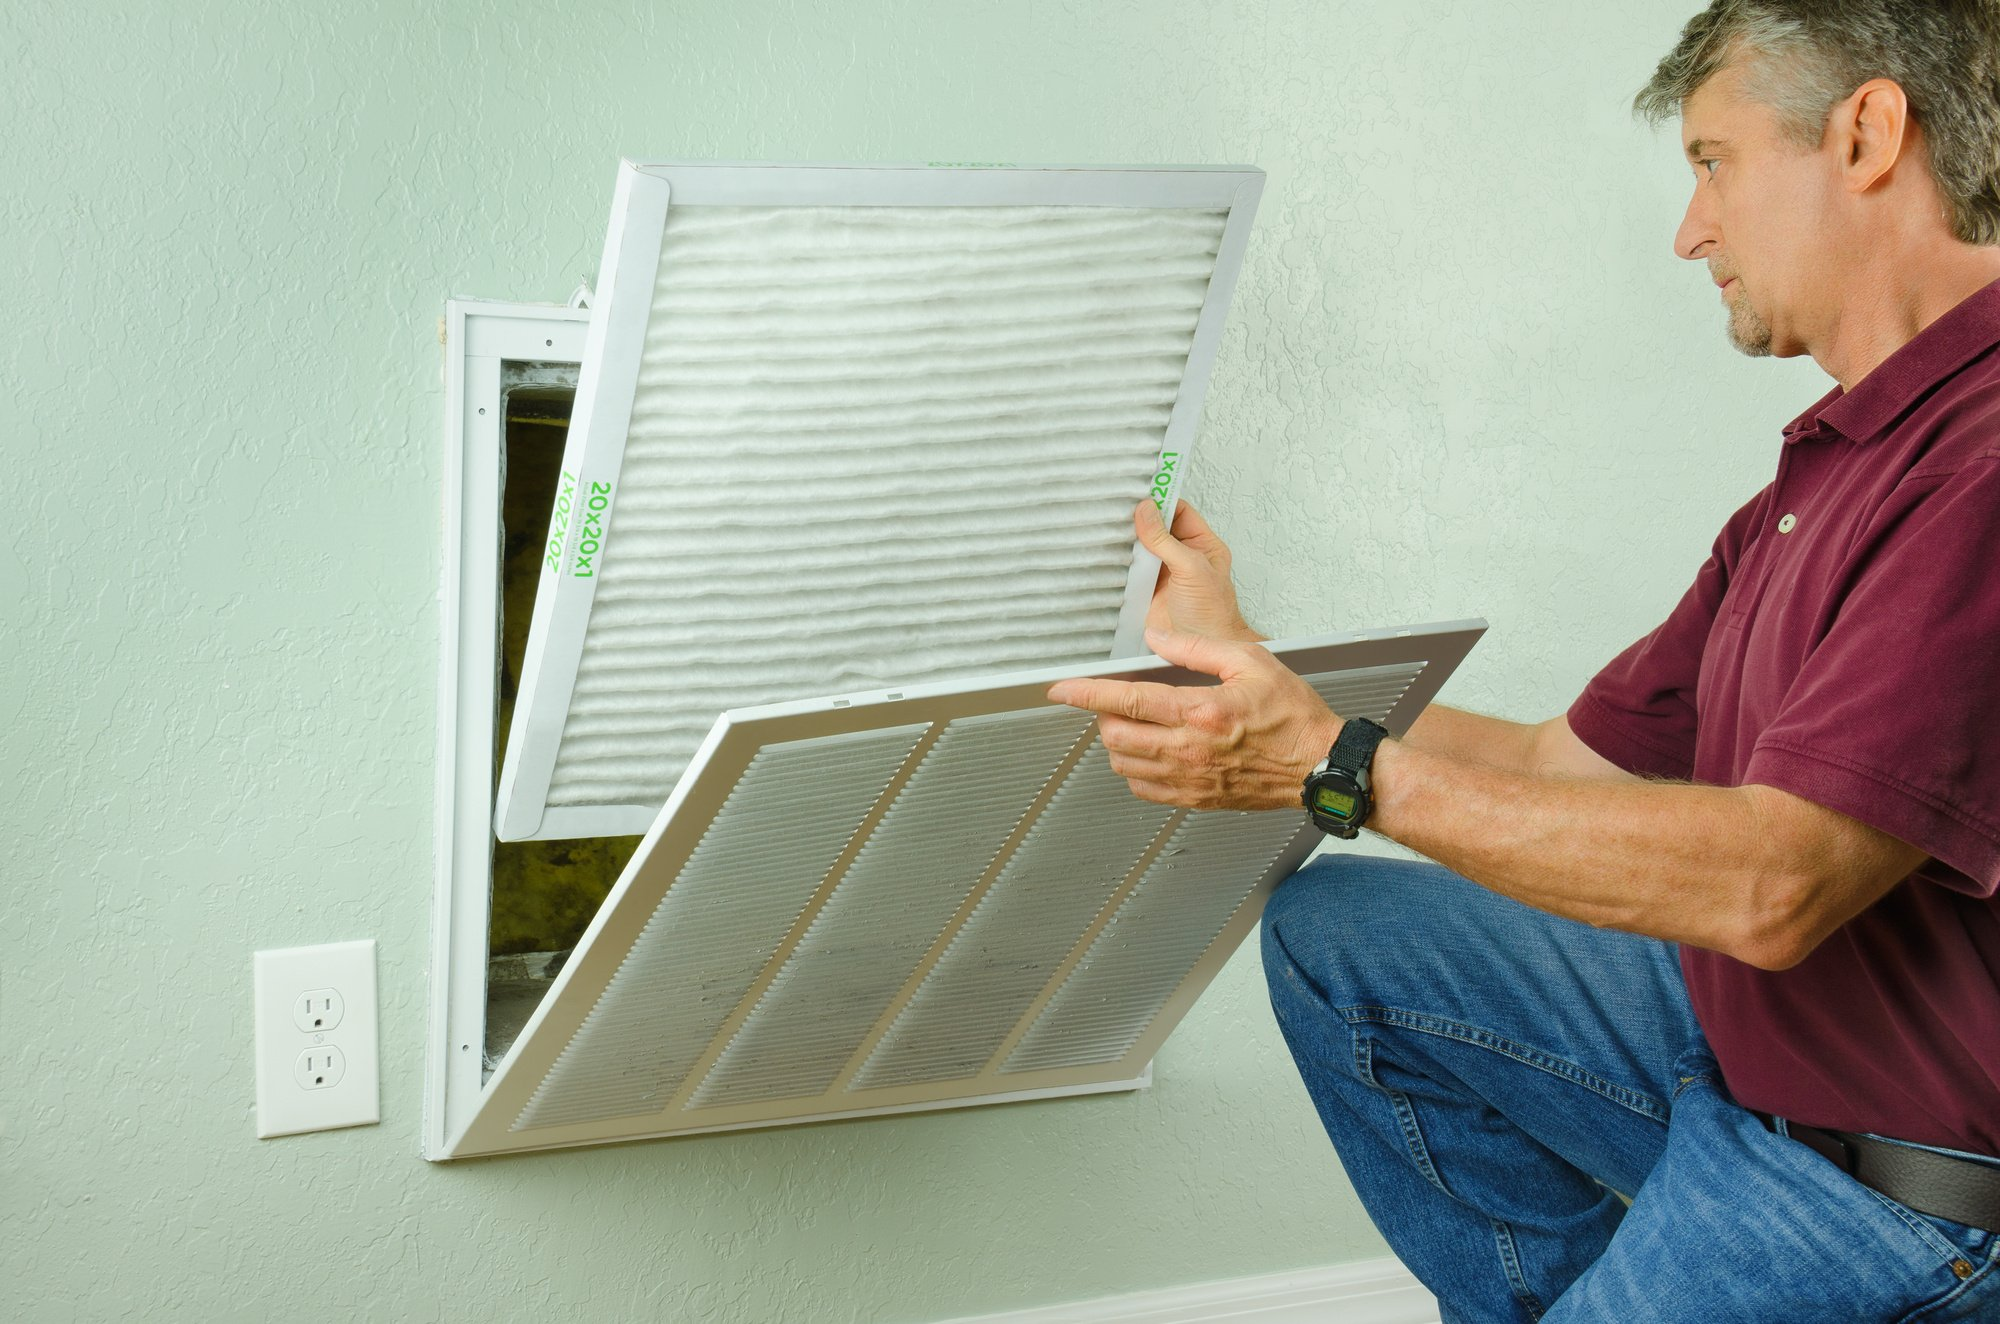 10 Ways To Get More HVAC Leads